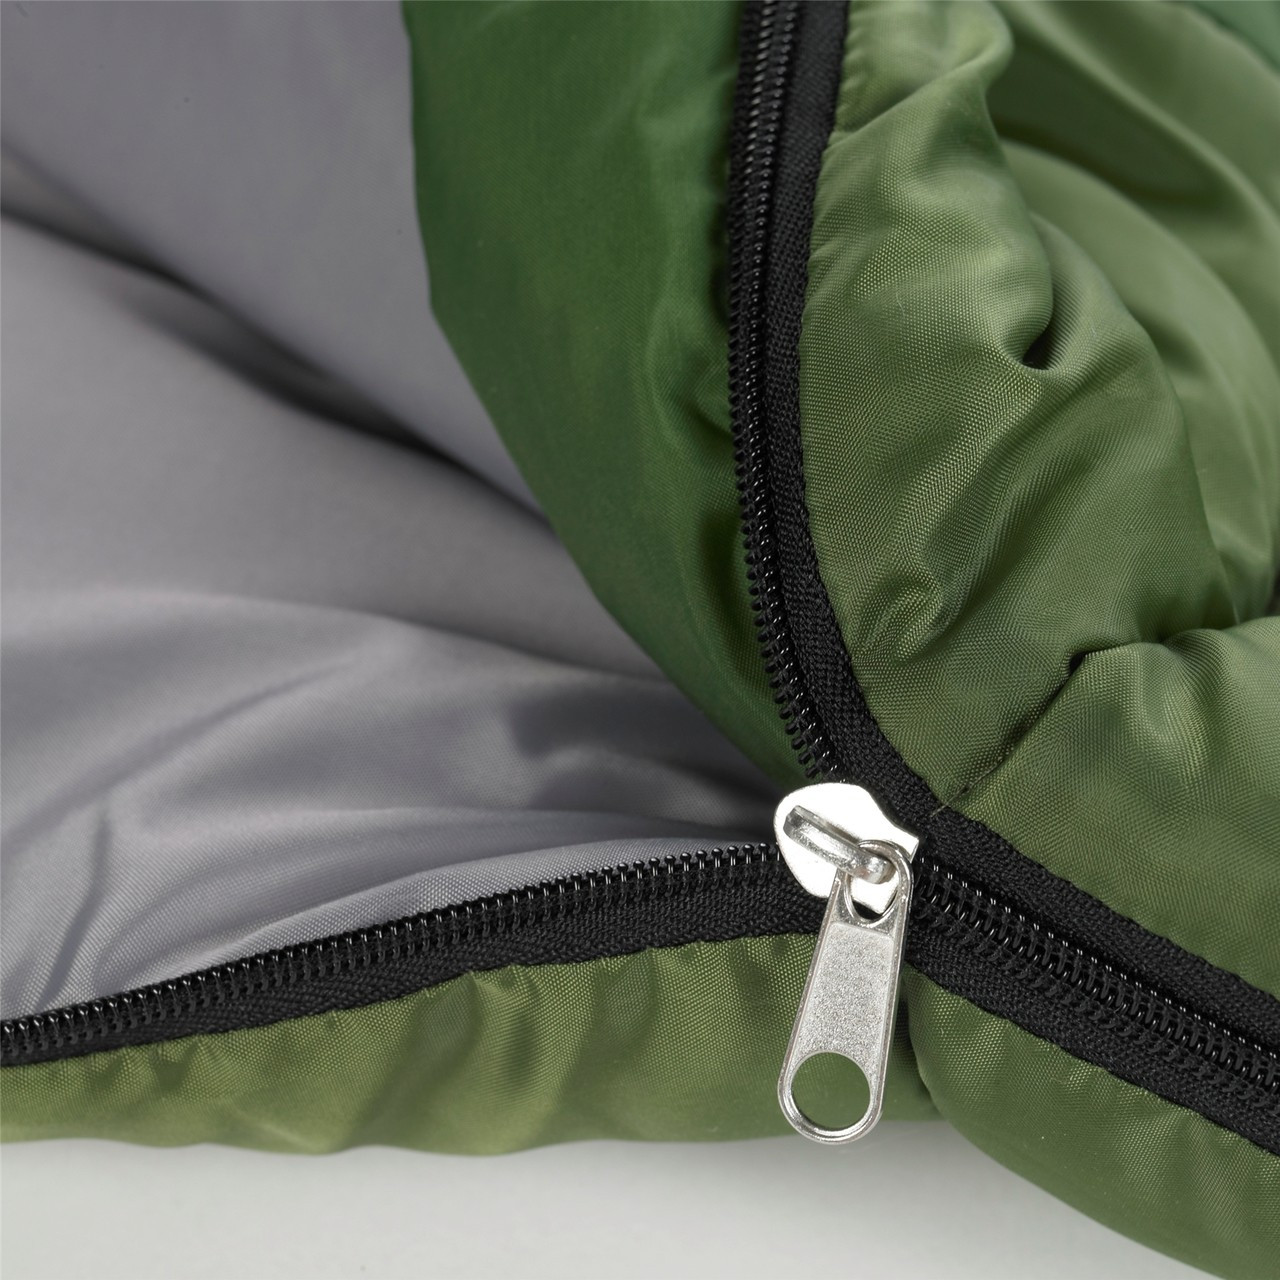 Close up view of the zipper partially unzipped on the Wenzel Kids backyard 30 degree sleeping bag, green